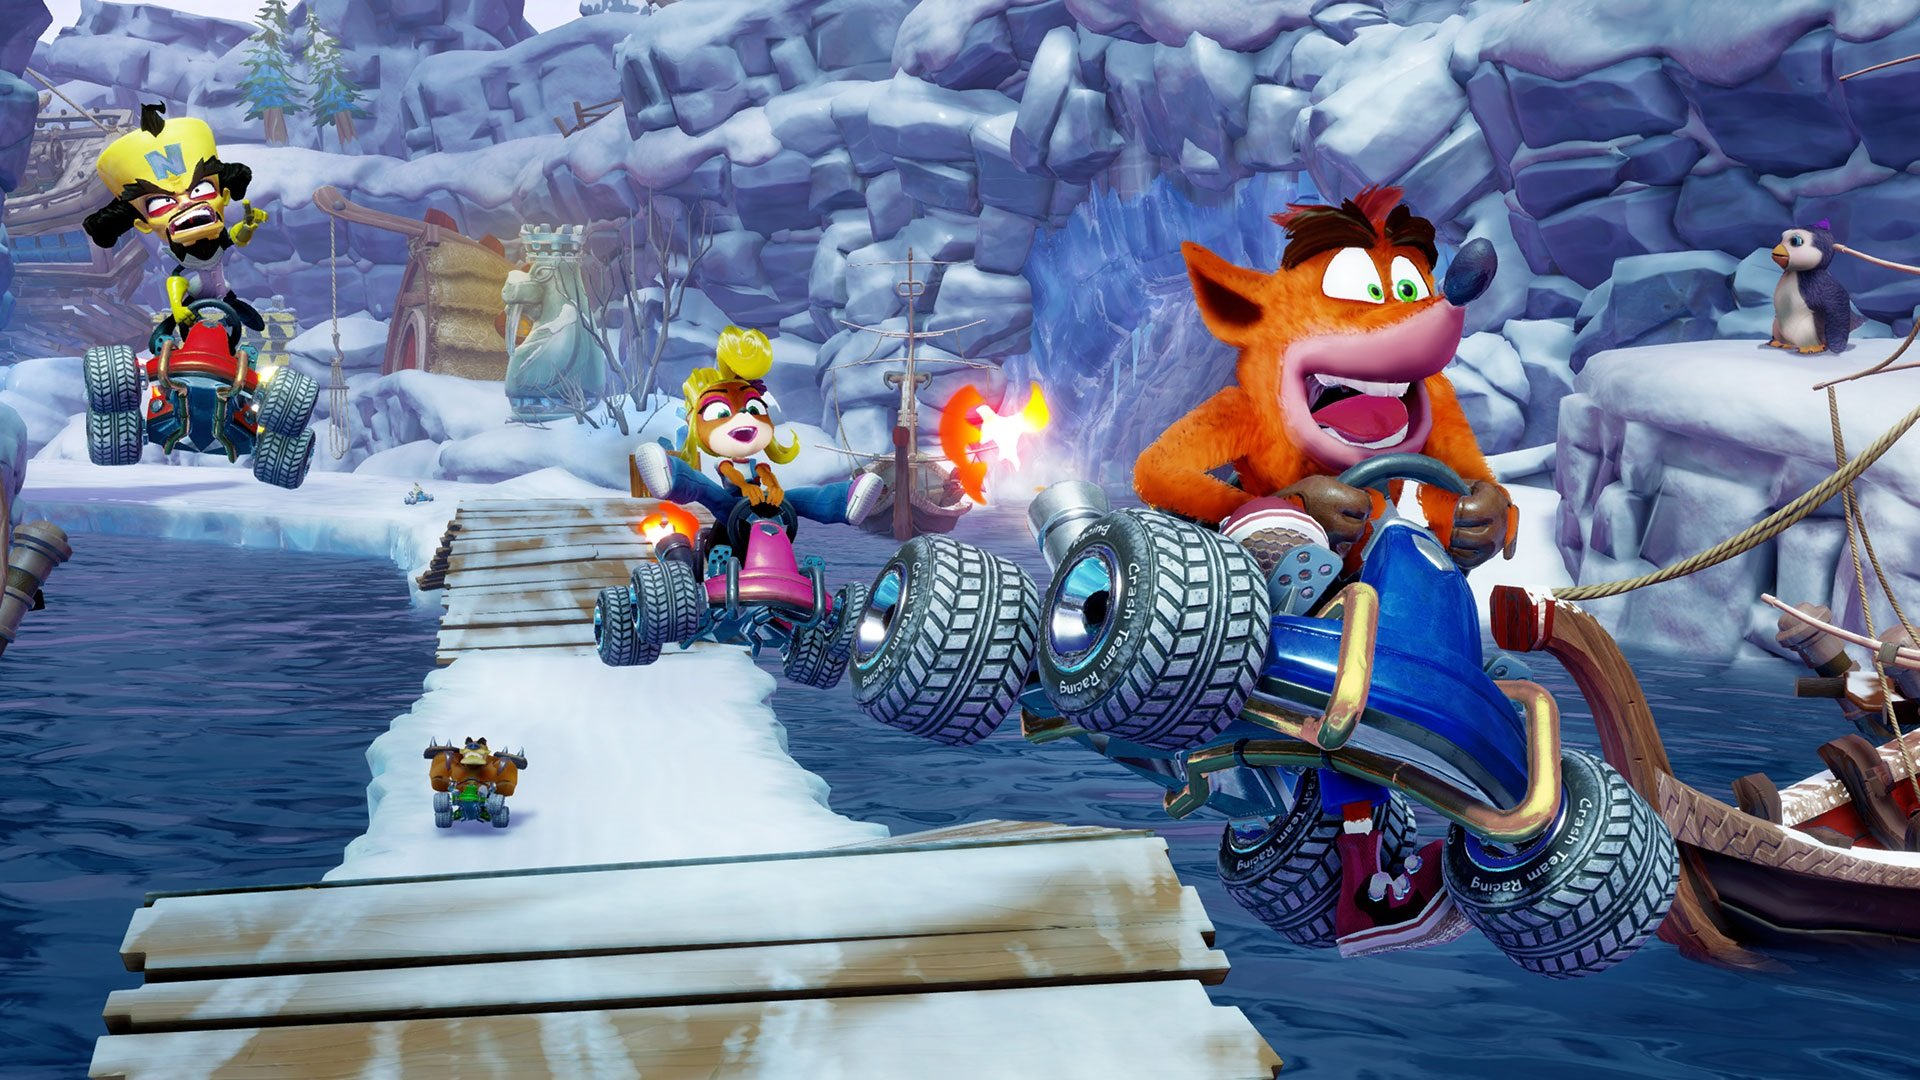 At the beginning of each race, you have the ability to trigger a Start Boost in Crash Team Racing Nitro-Fueled by timing when you press the accelerate button.